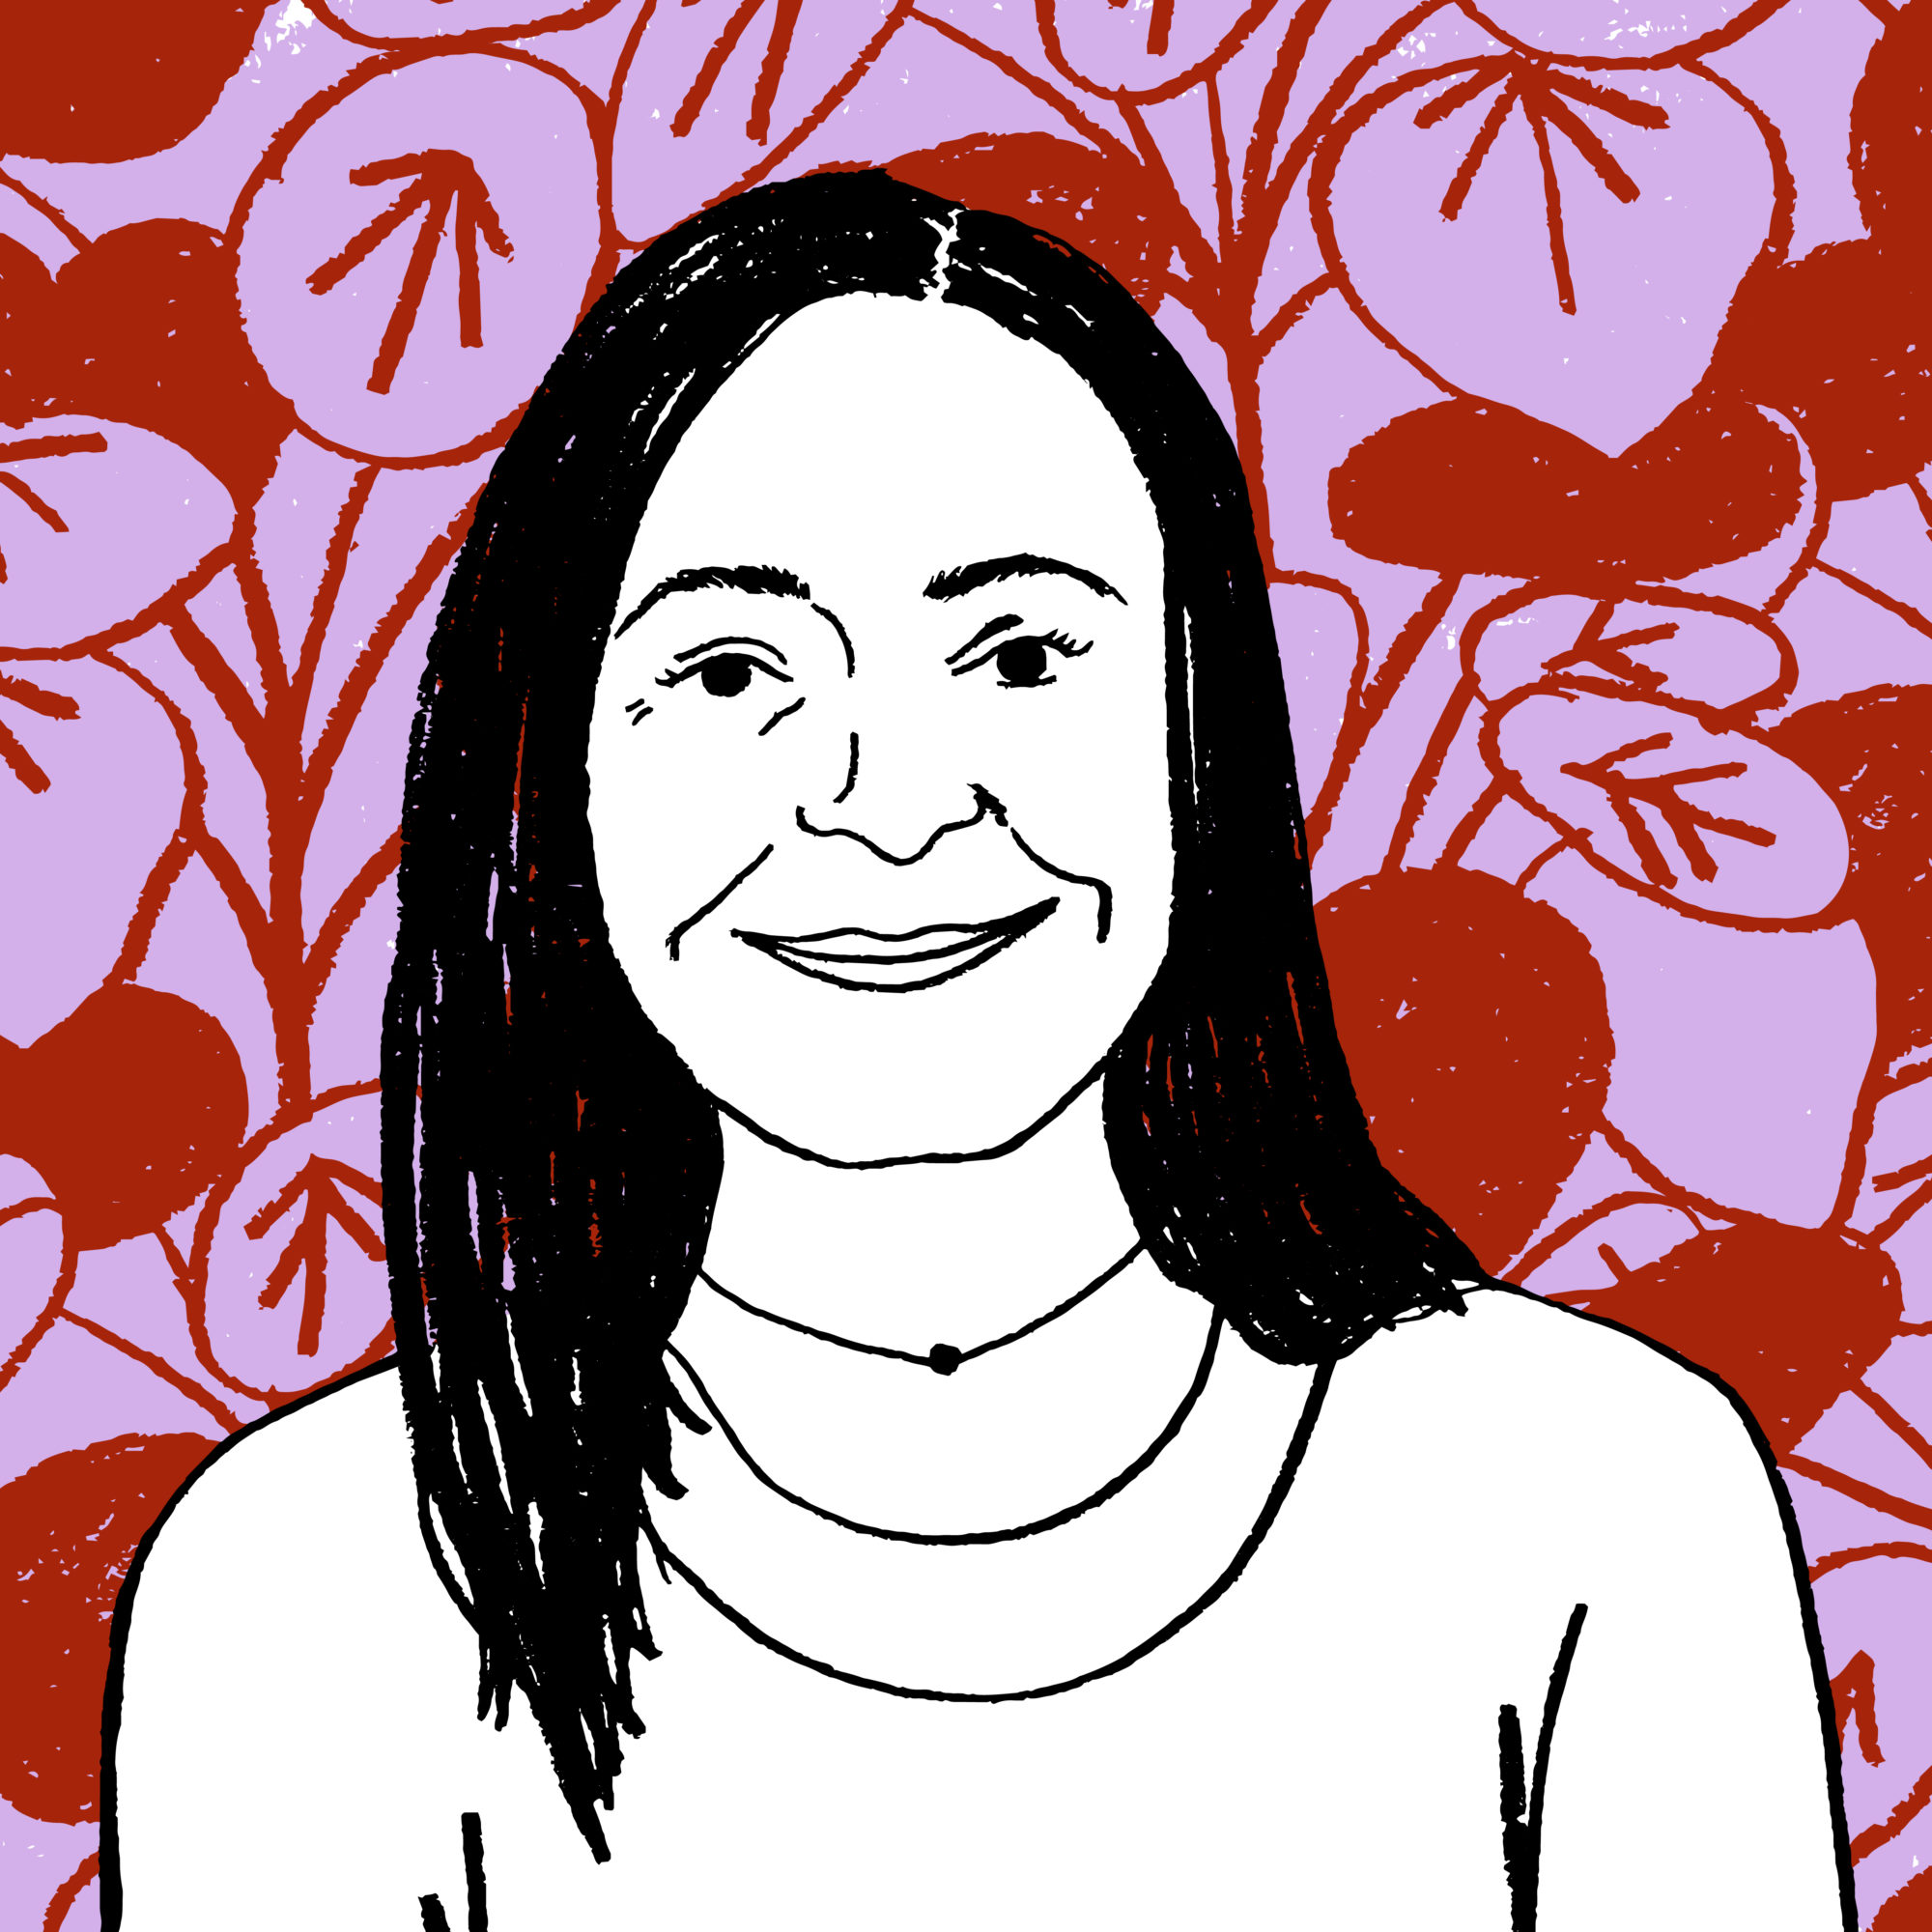 Taste_Katie_PodcastPortrait-01